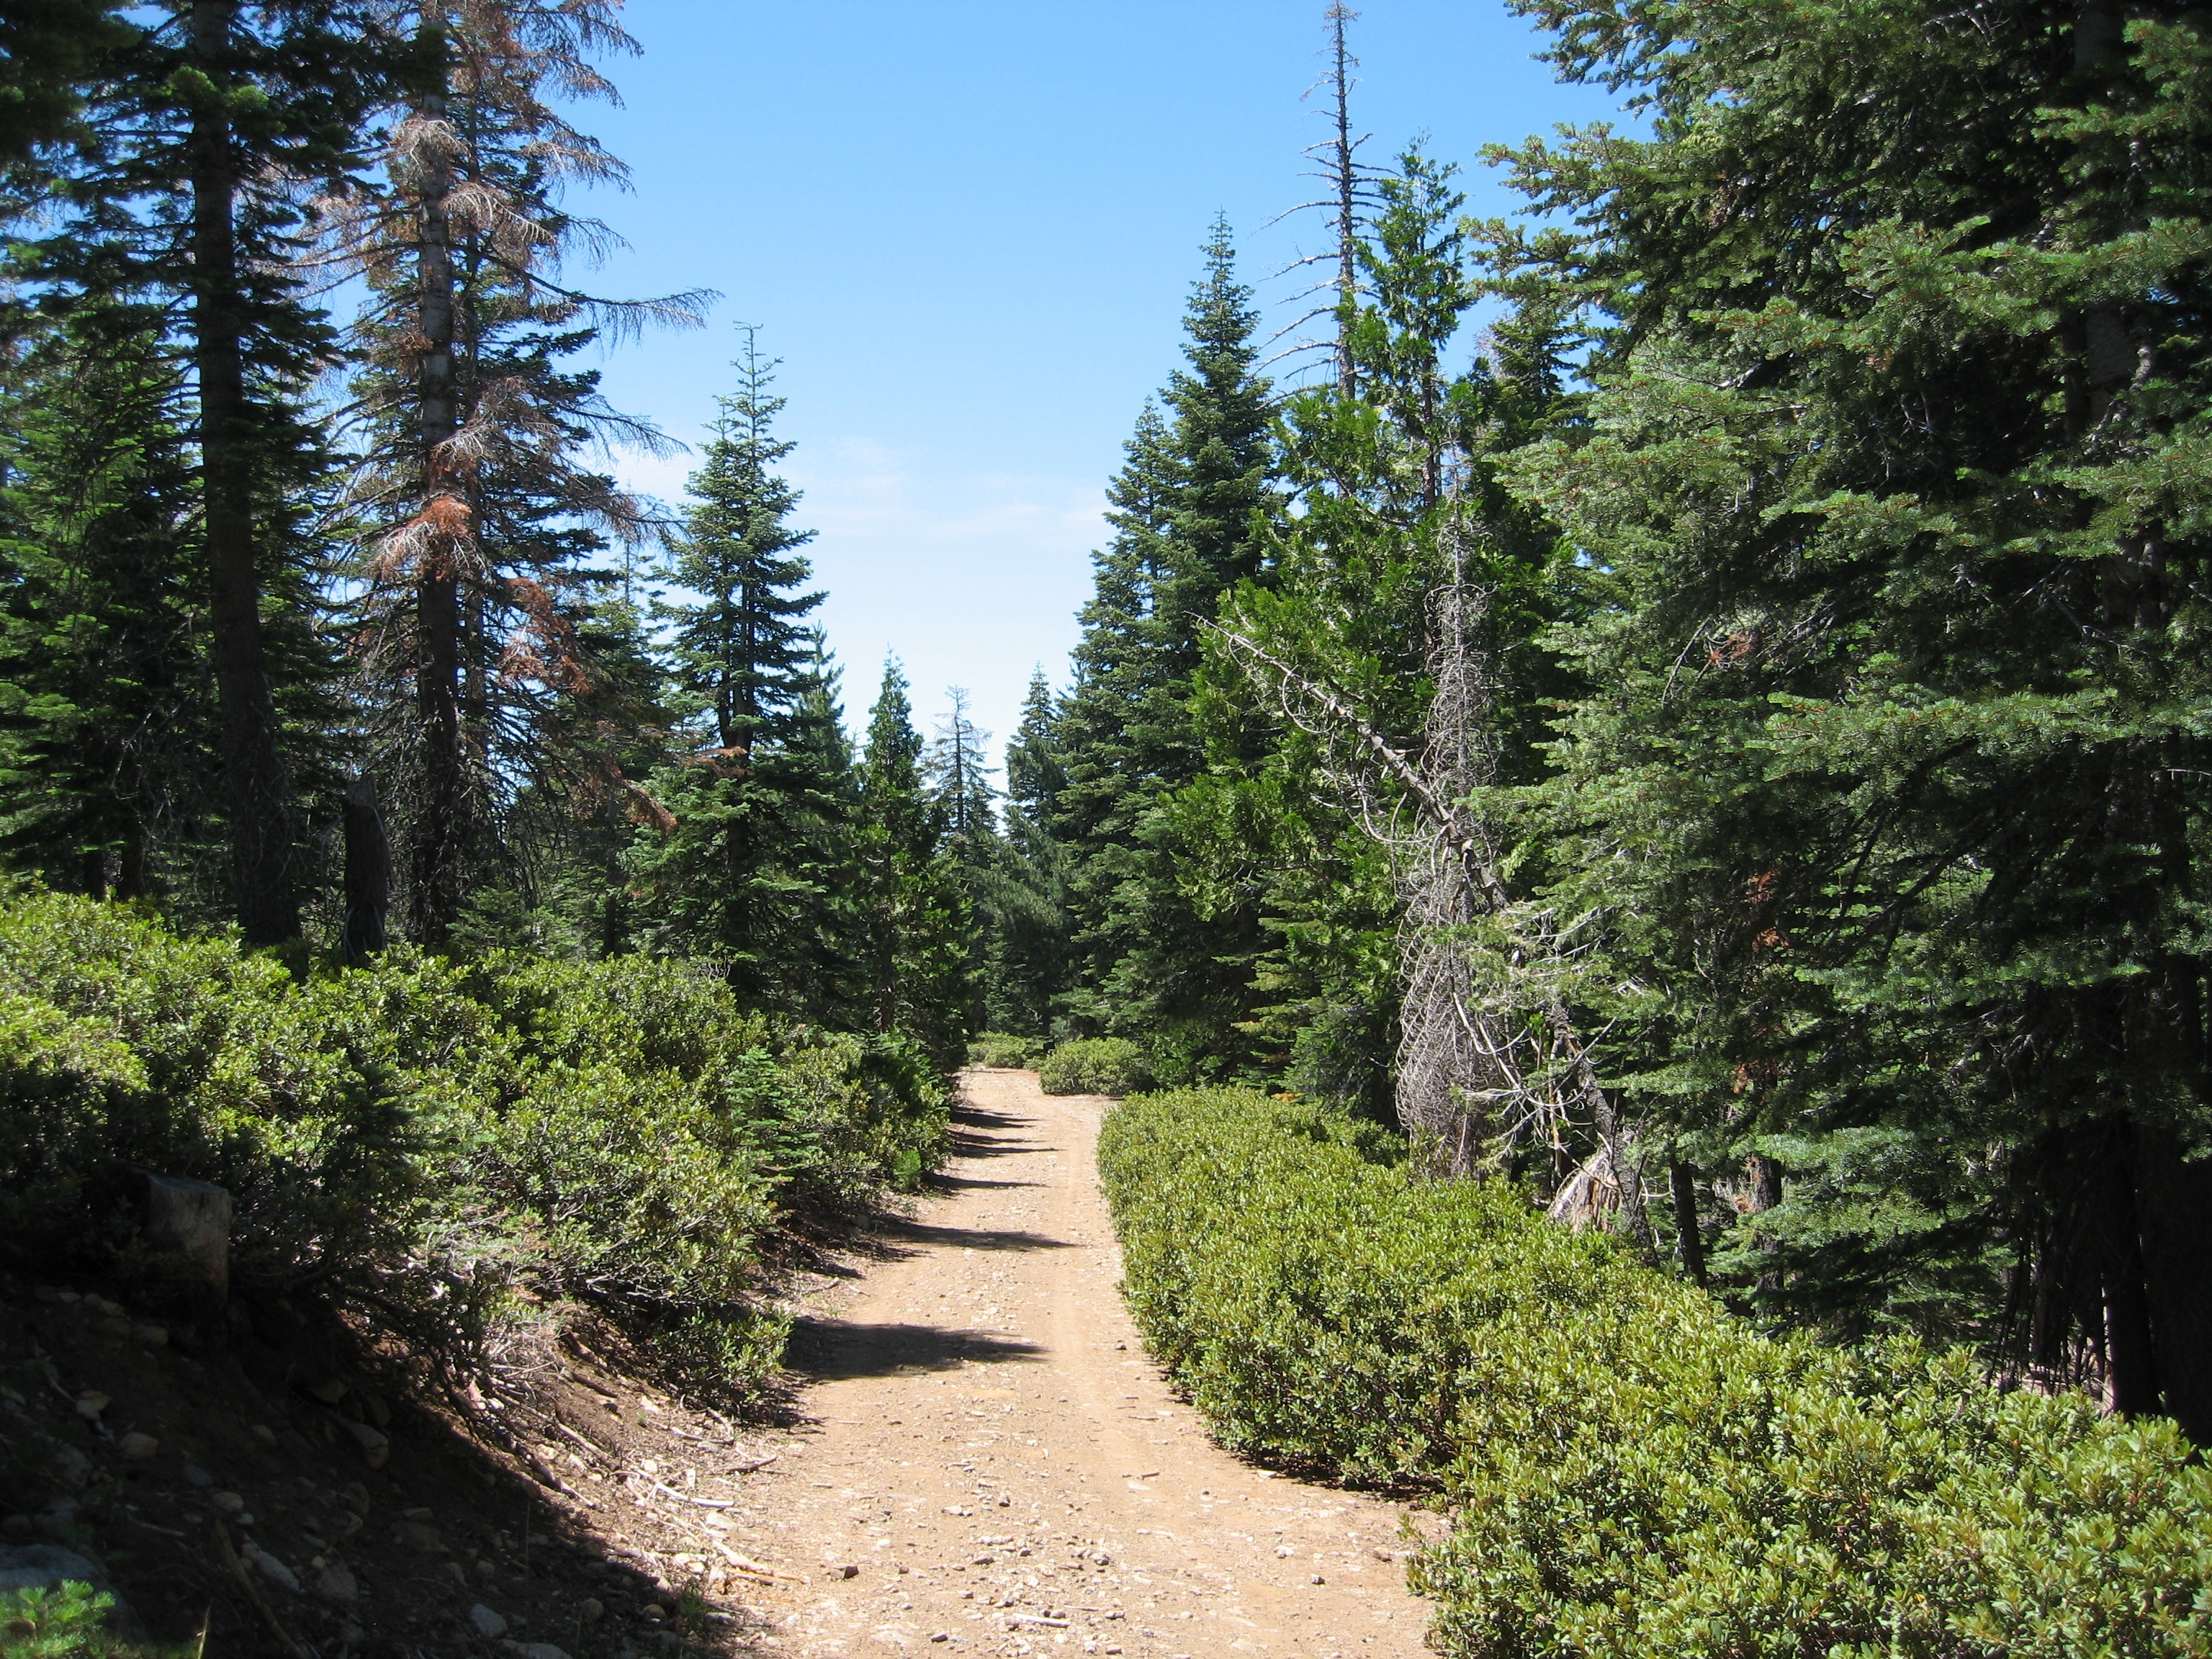 The Grouse Ridge Forest, donated to UC research, is located on three parcels in the headwaters of the Yuba River in Nevada County